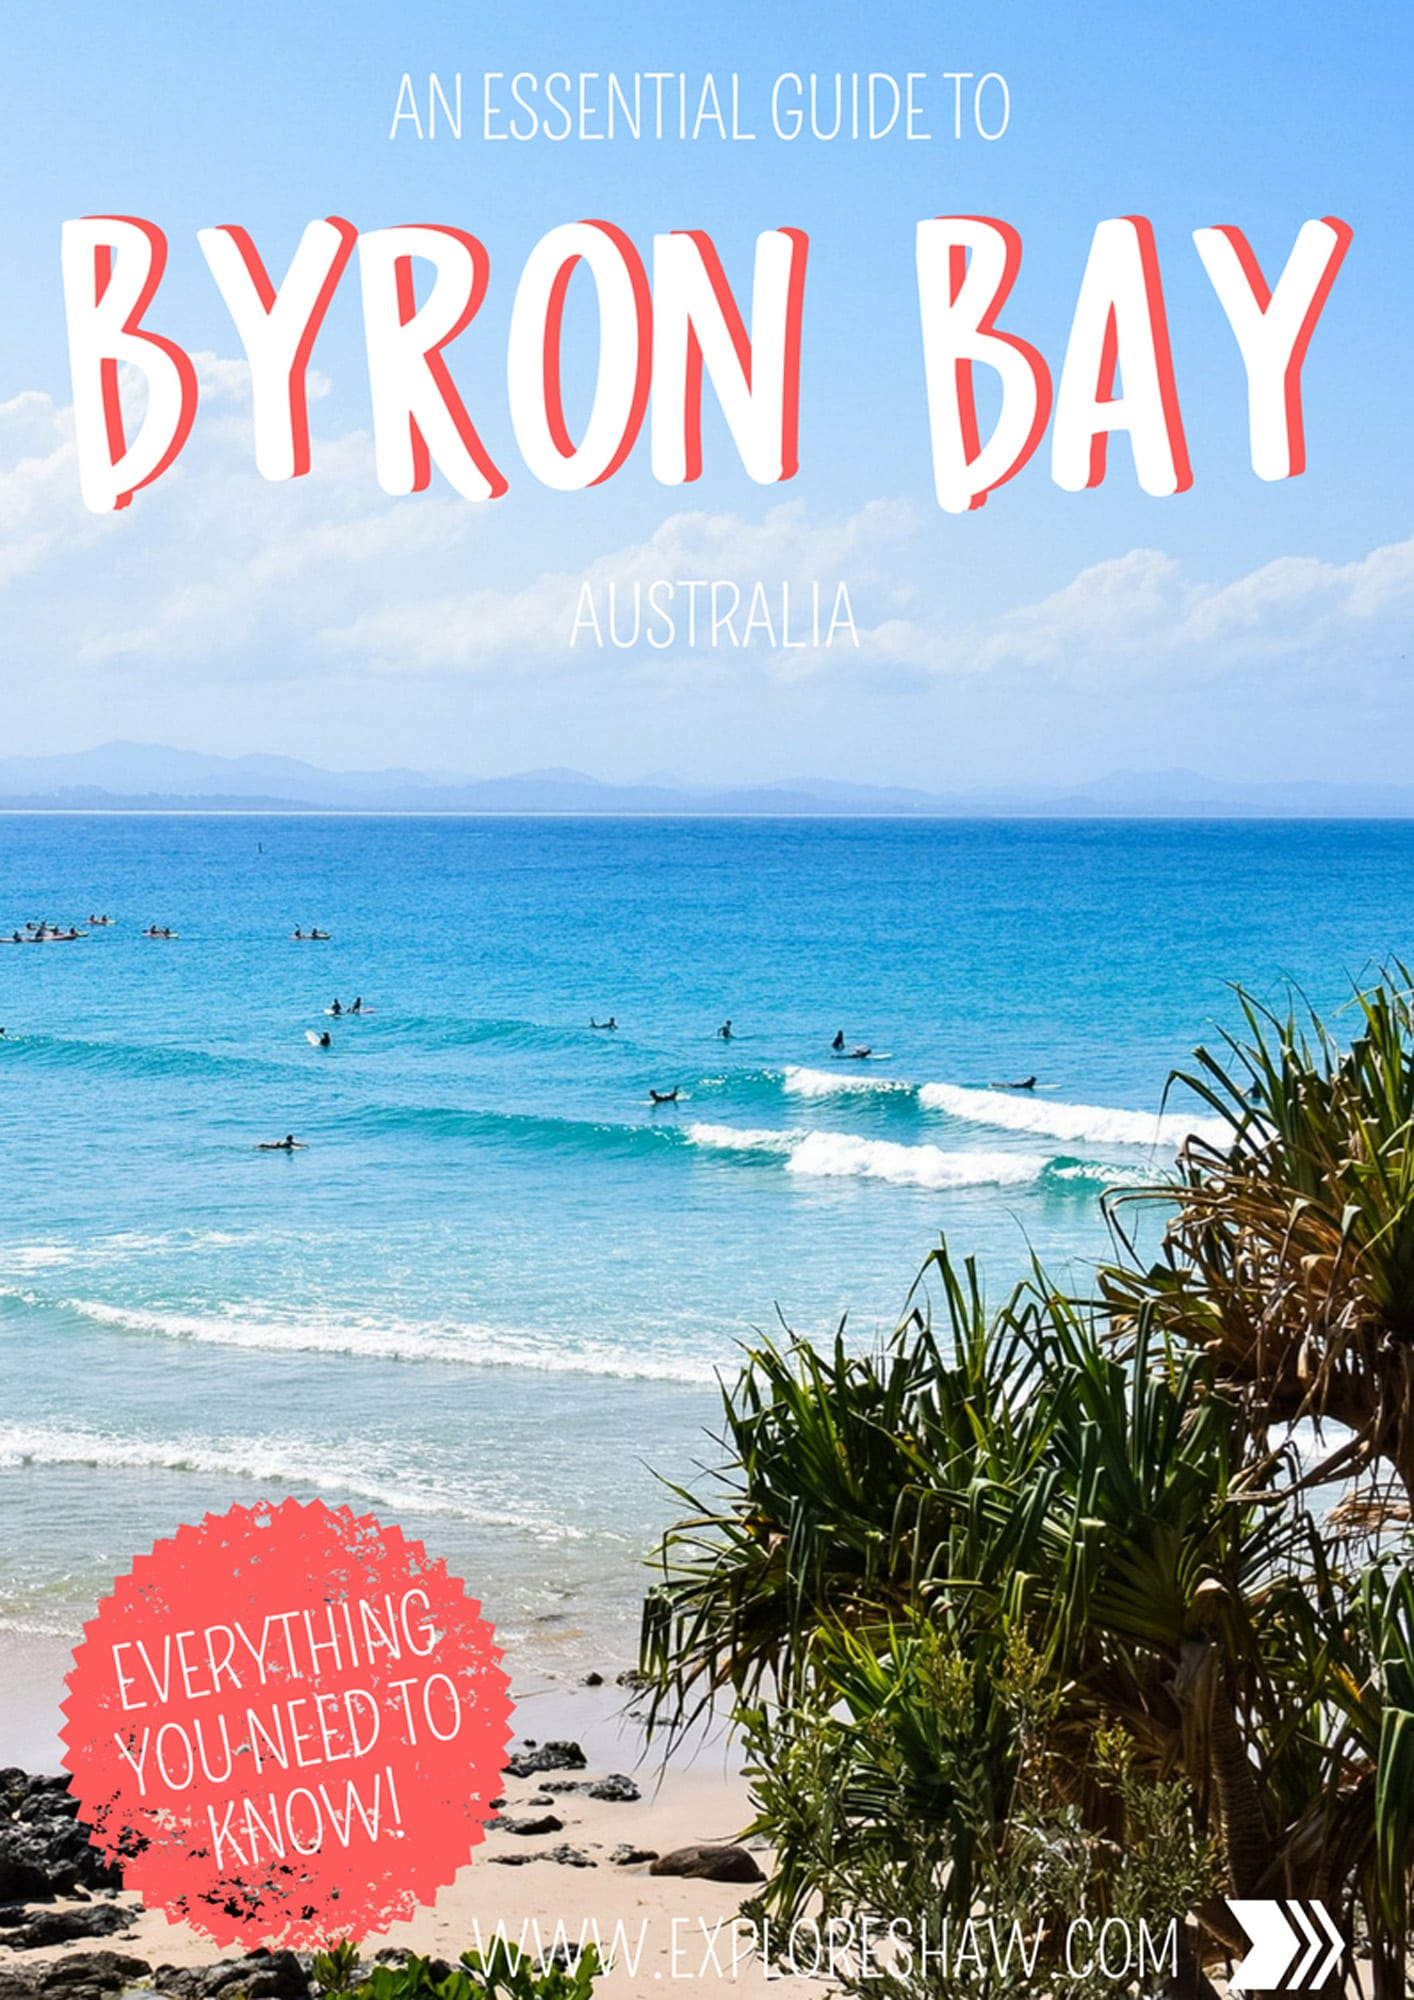 AN ESSENTIAL GUIDE TO BYRON BAY